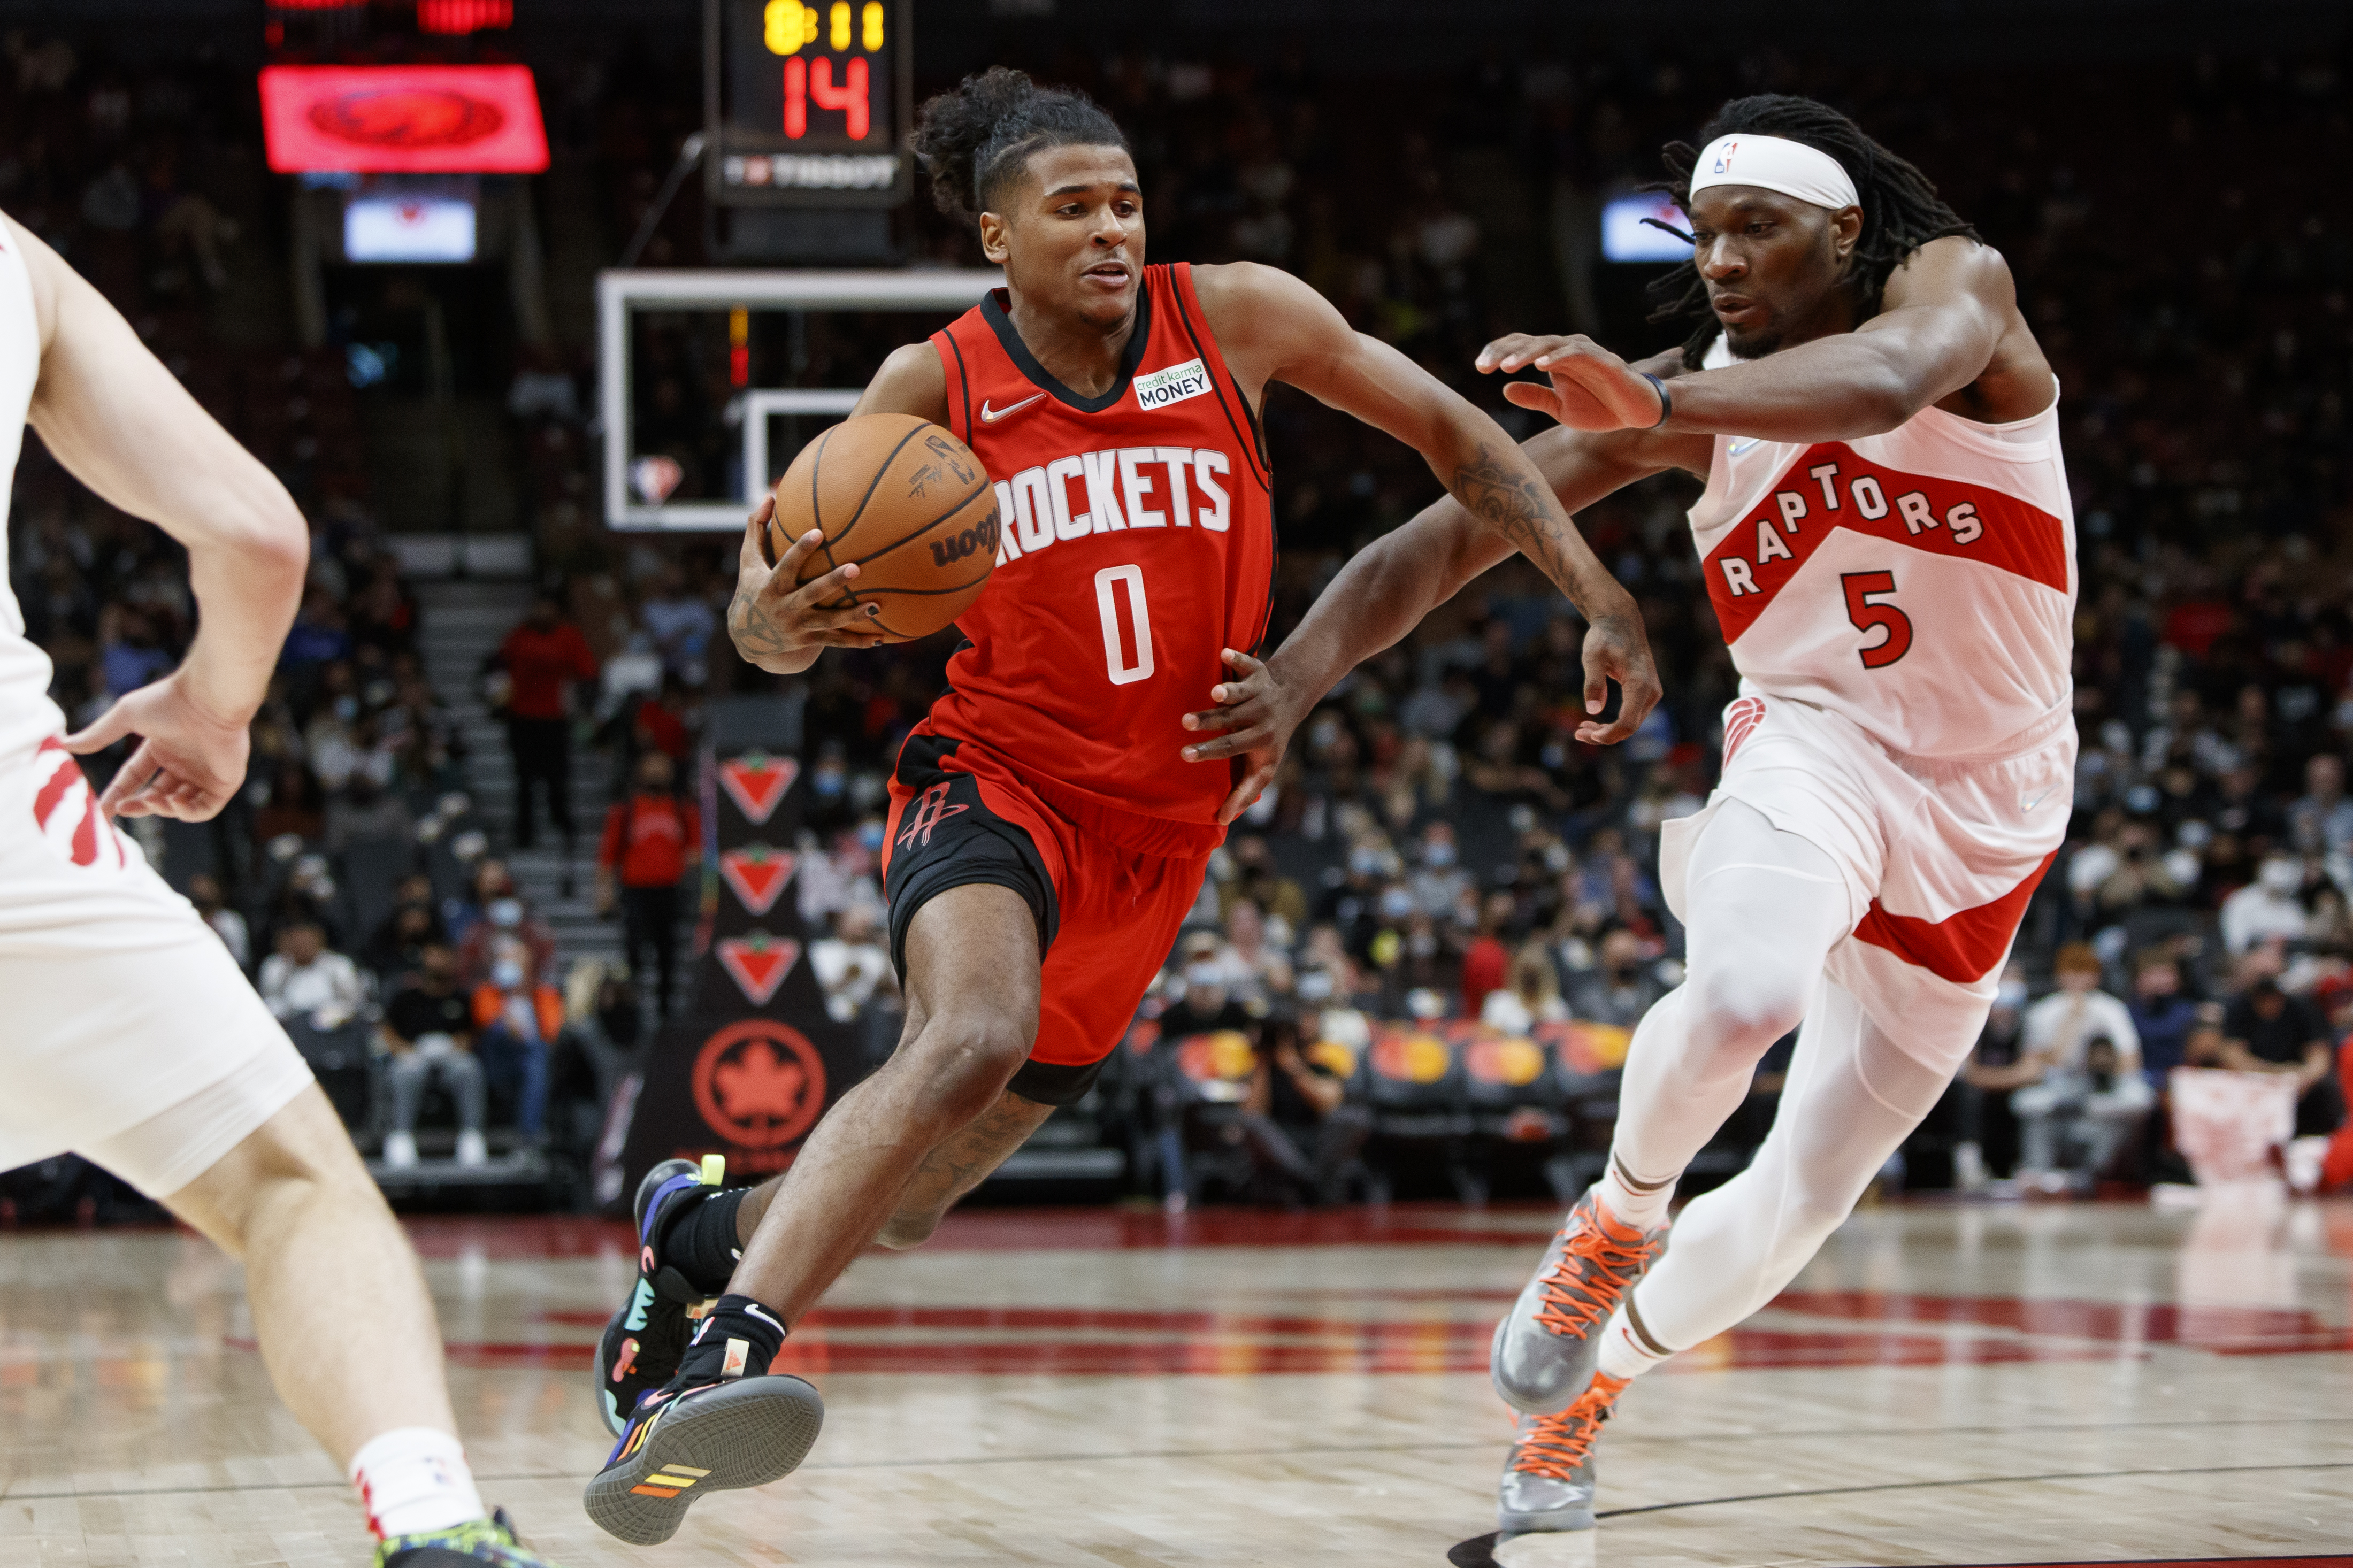 Jalen Green #0 of the Houston Rockets drives to the net on Precious Achiuwa #5 of the Toronto Raptors during pre-season NBA game action at Scotiabank Arena on October 11, 2021 in Toronto, Canada.